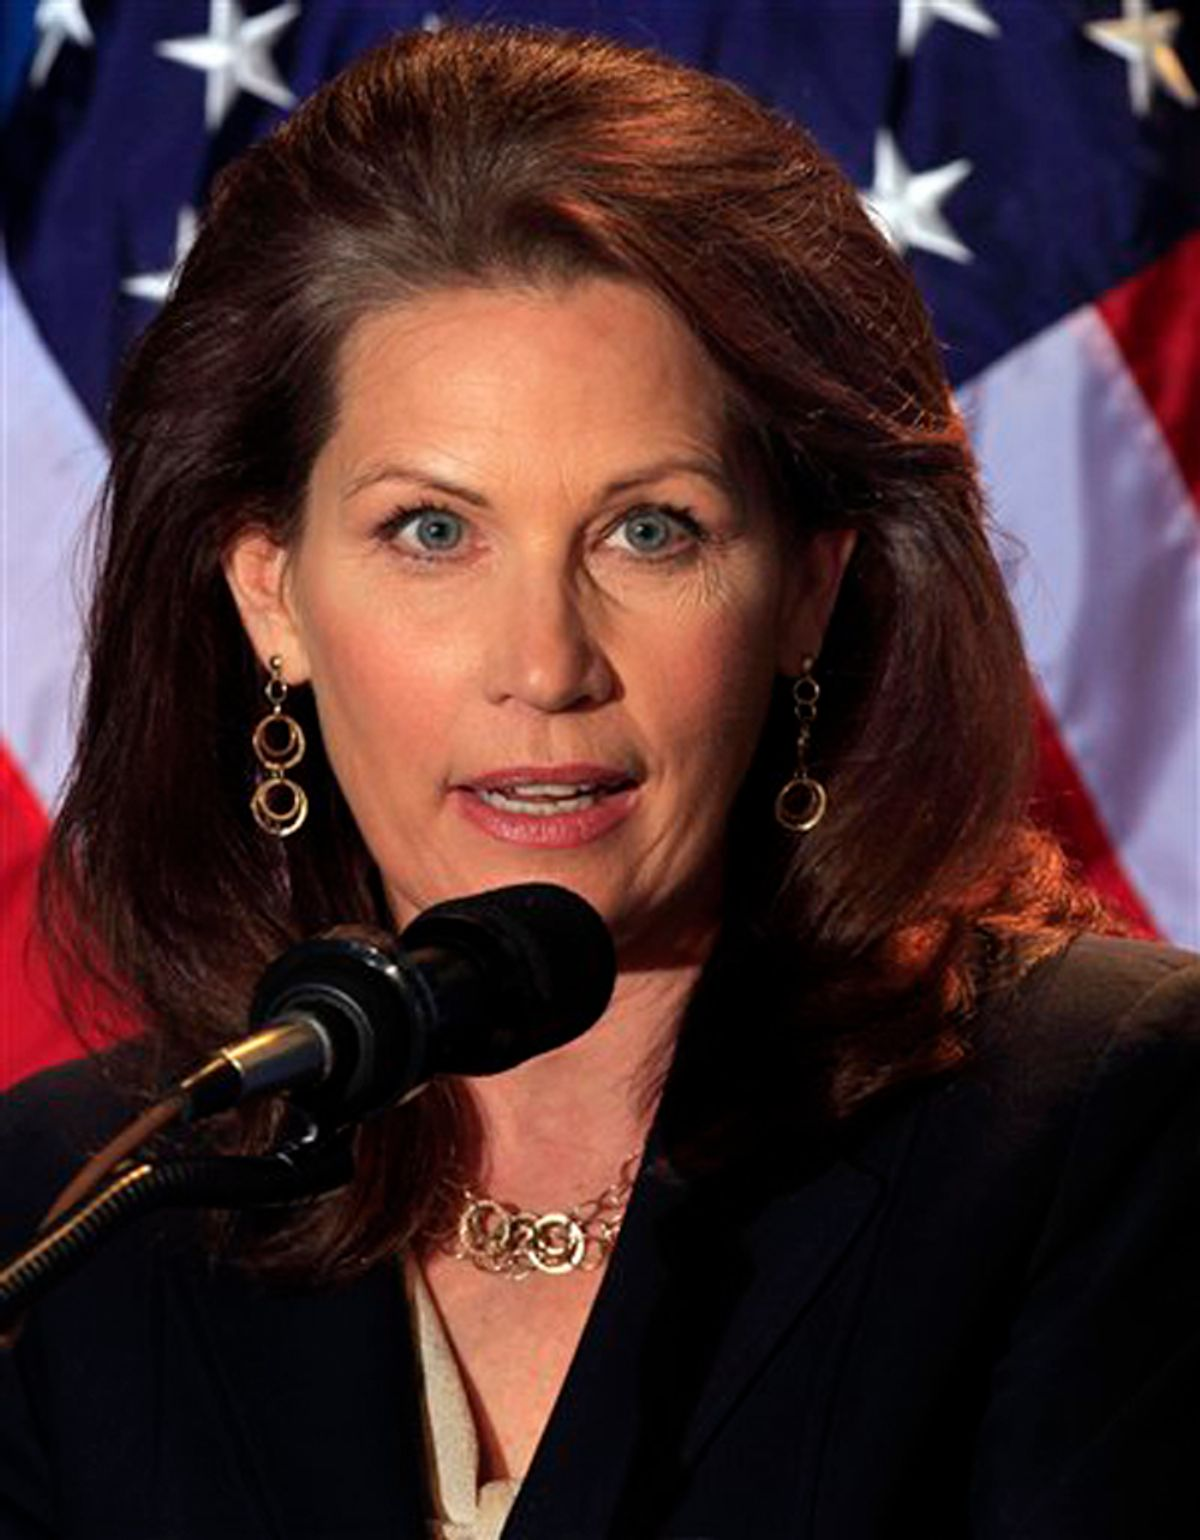 Possible 2012 presidential hopeful, U.S. Rep. Michelle Bachmann, R-Minn. speaks during a dinner sponsored by Americans for Prosperity, Friday, April 29, 2011 in Manchester , N.H. (AP Photo/Jim Cole) (Jim Cole)